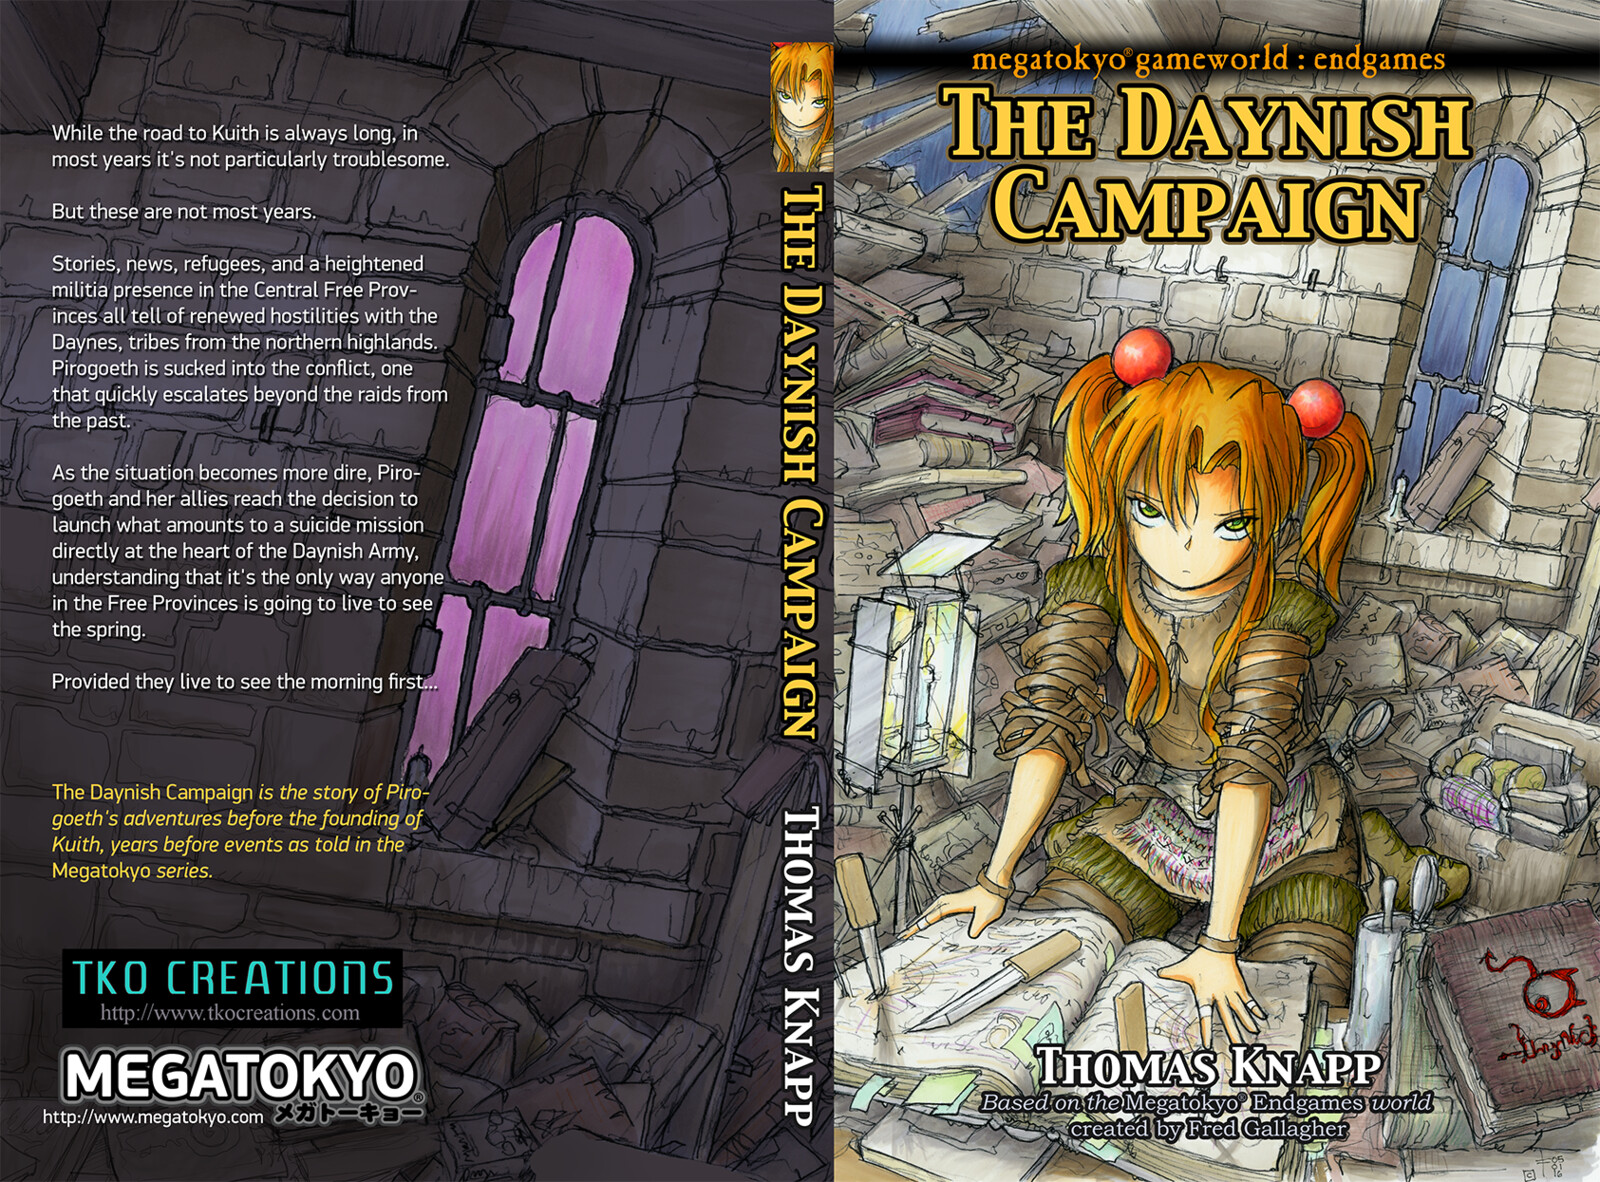 Mockup for the final book cover